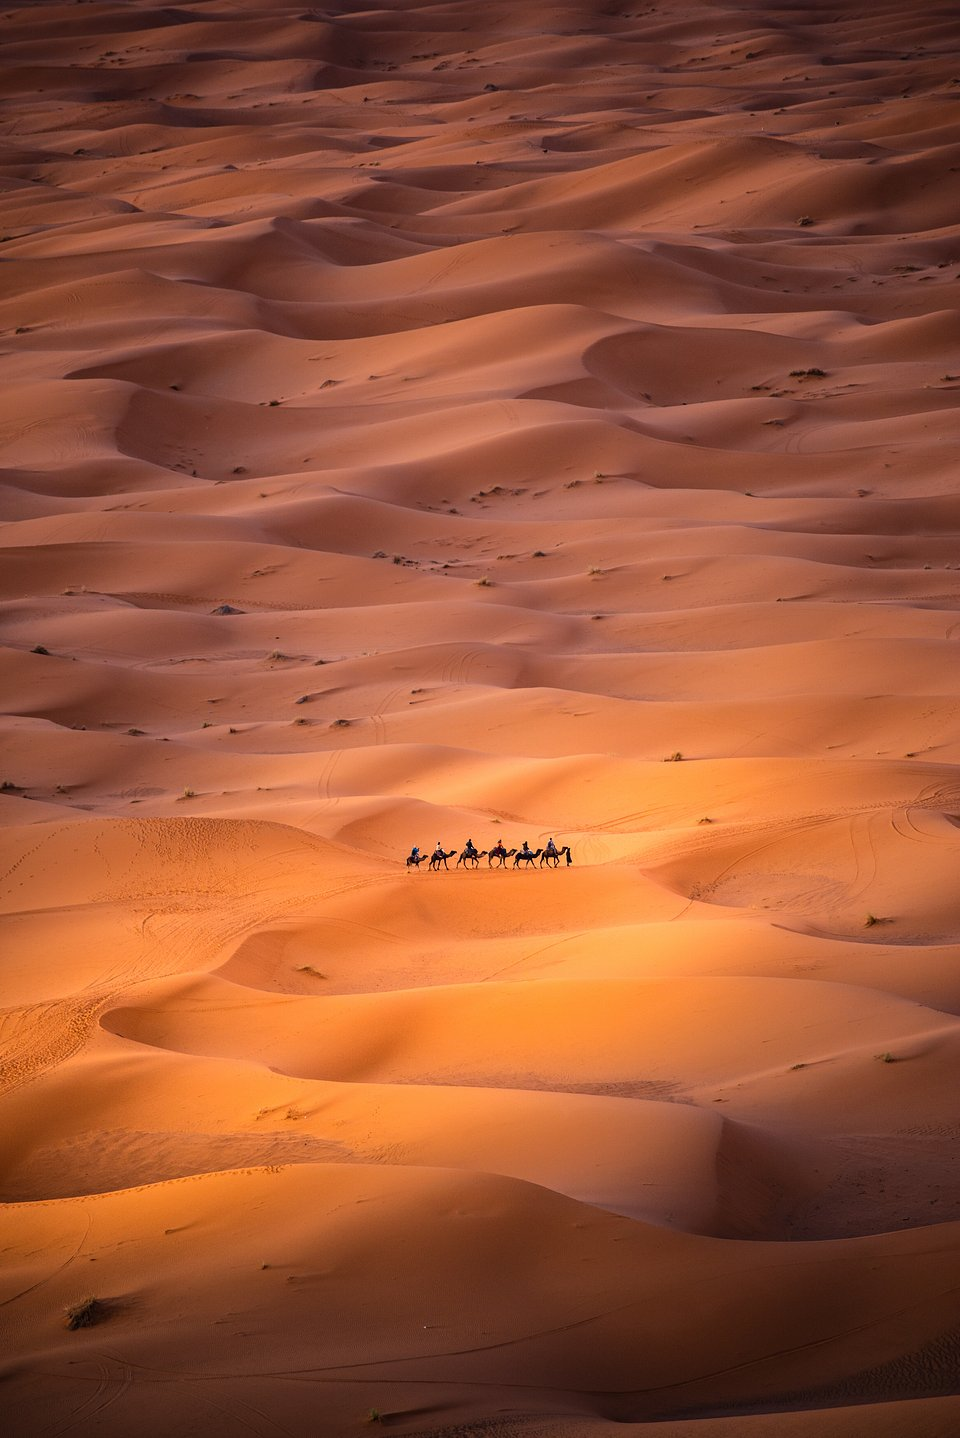 The shot was taken from a high dune in Morocco, where Nomads are moving through the Sahara desert.(Carles Alonso/Agora)